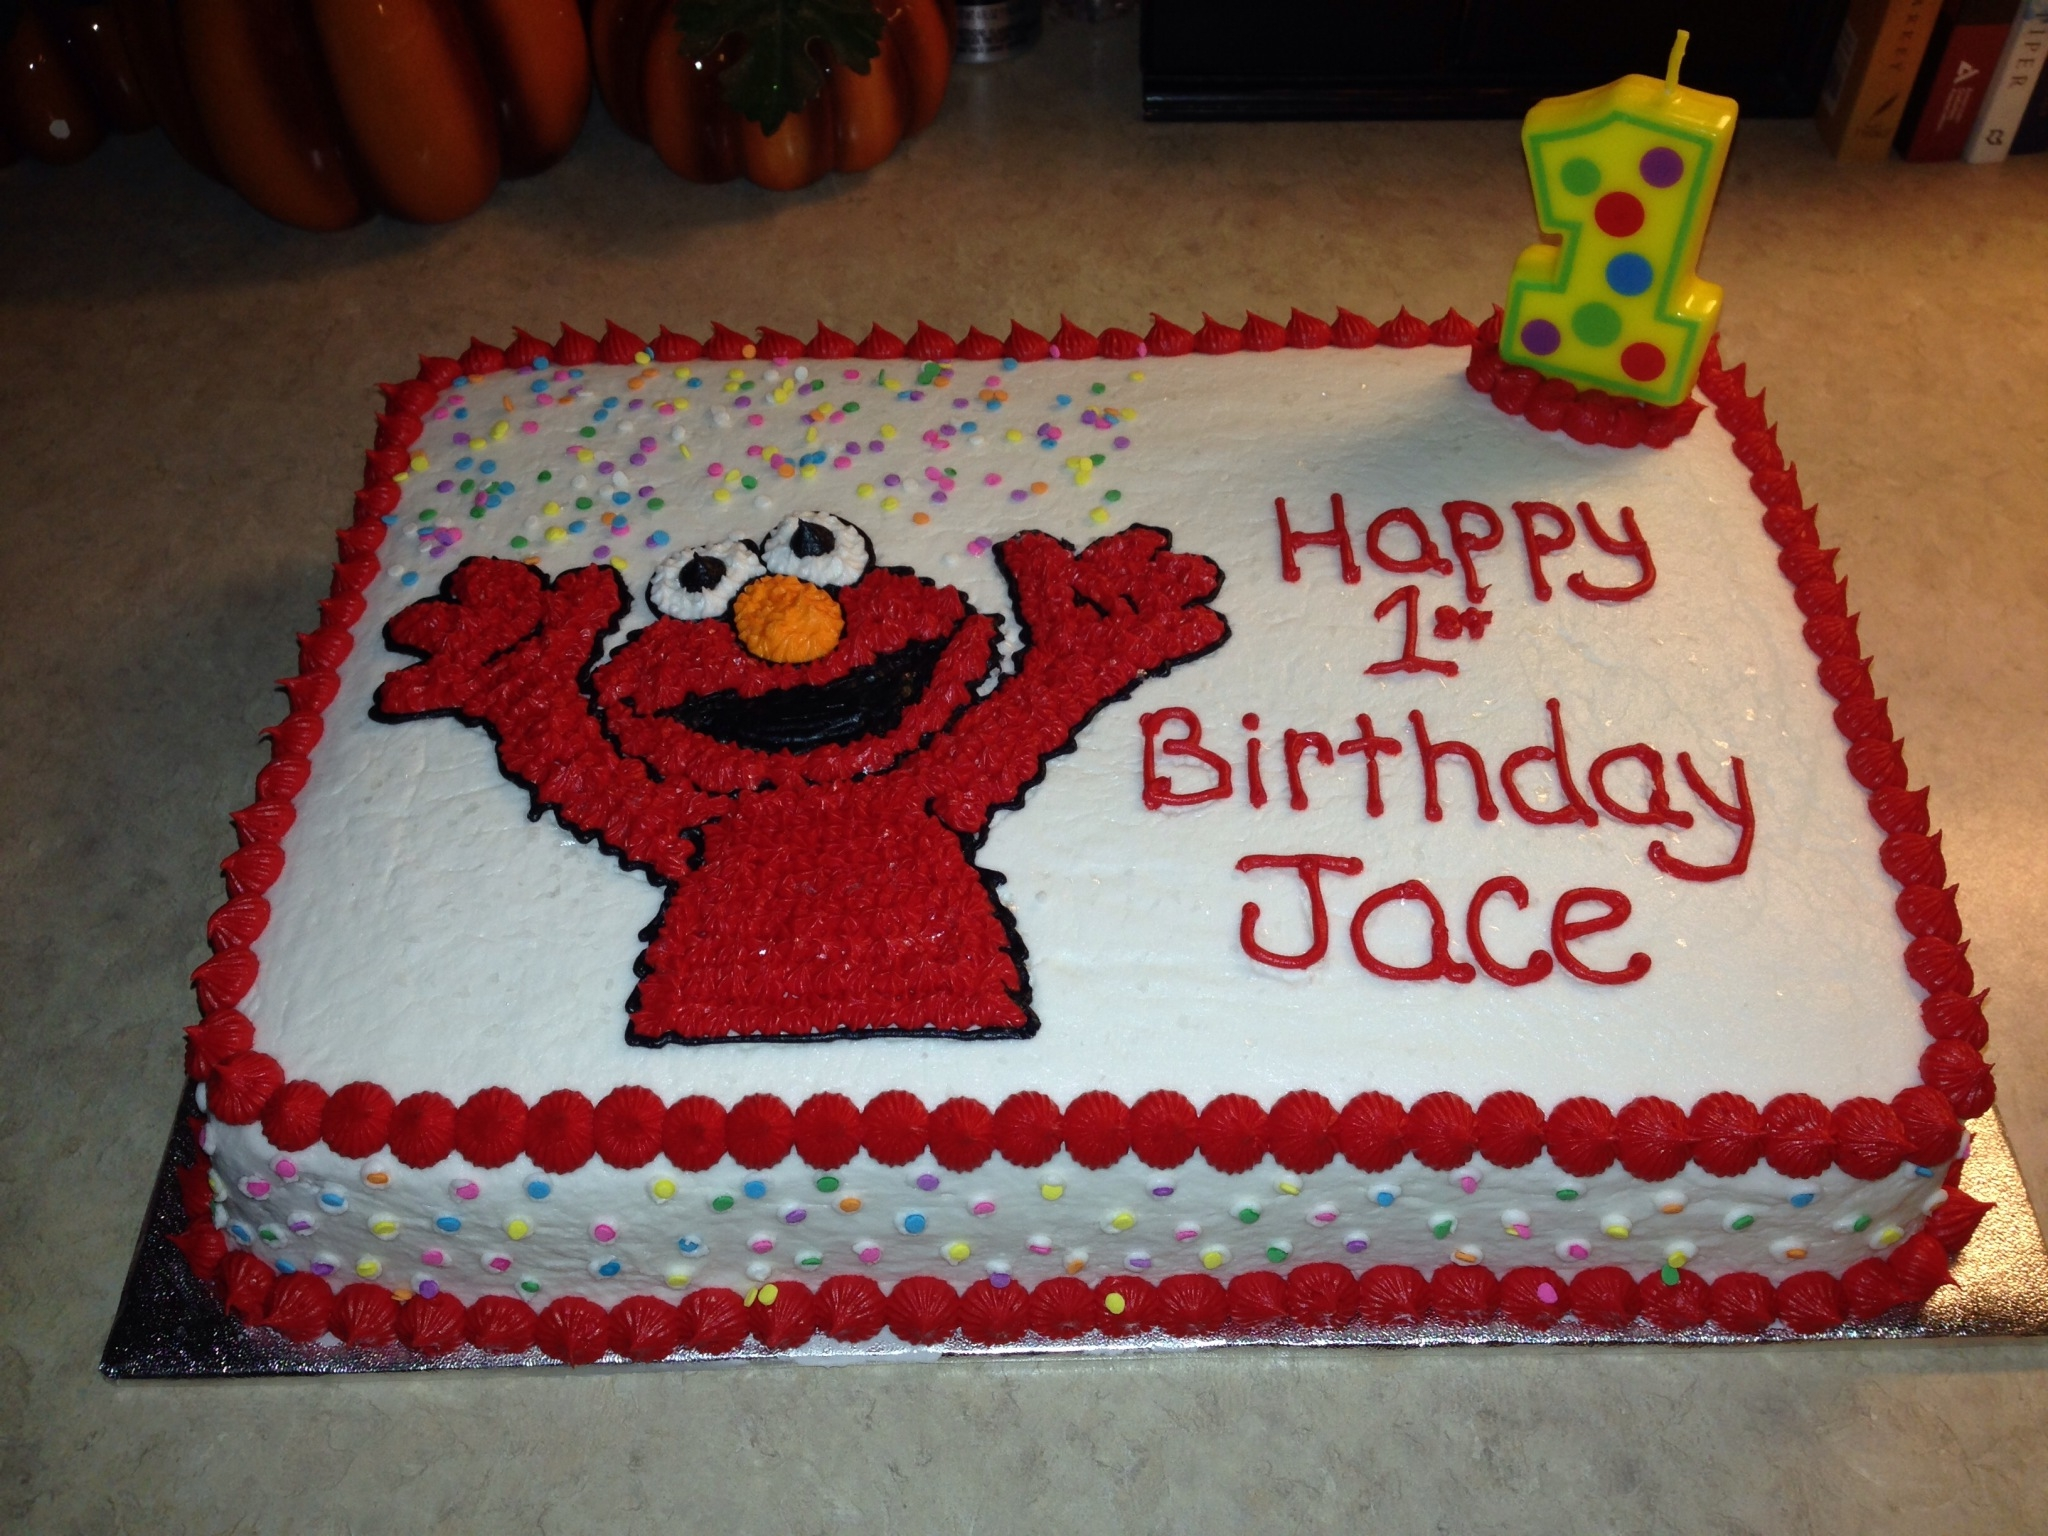 elmo birthday cake edible image ; 900_298880r0s_first-birthday-cake-for-a-friends-little-grandson-its-a-chocolate-cake-with-buttercream-frosting-i-got-the-elmo-design-from-some-color